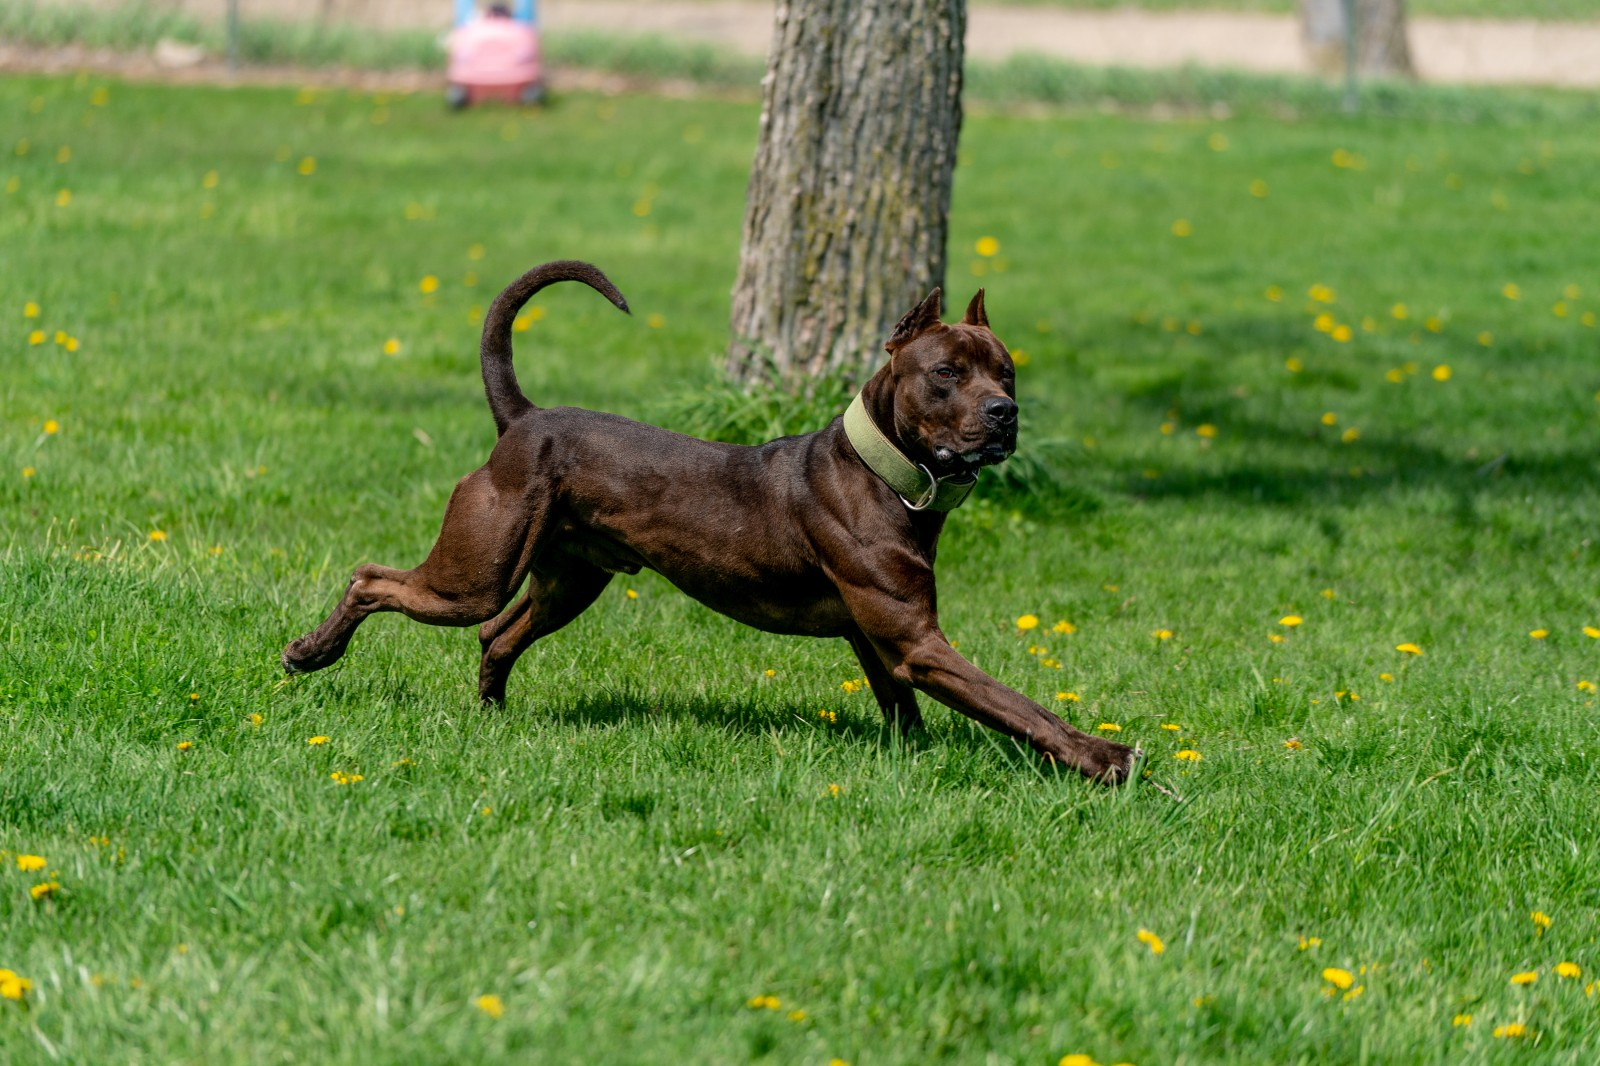 Hitman, a black beauty of an XL pit bull stud is all grace in this shot of him mid stride, face turned toward the camera, tail up, sun glinting off his flexed muscles.